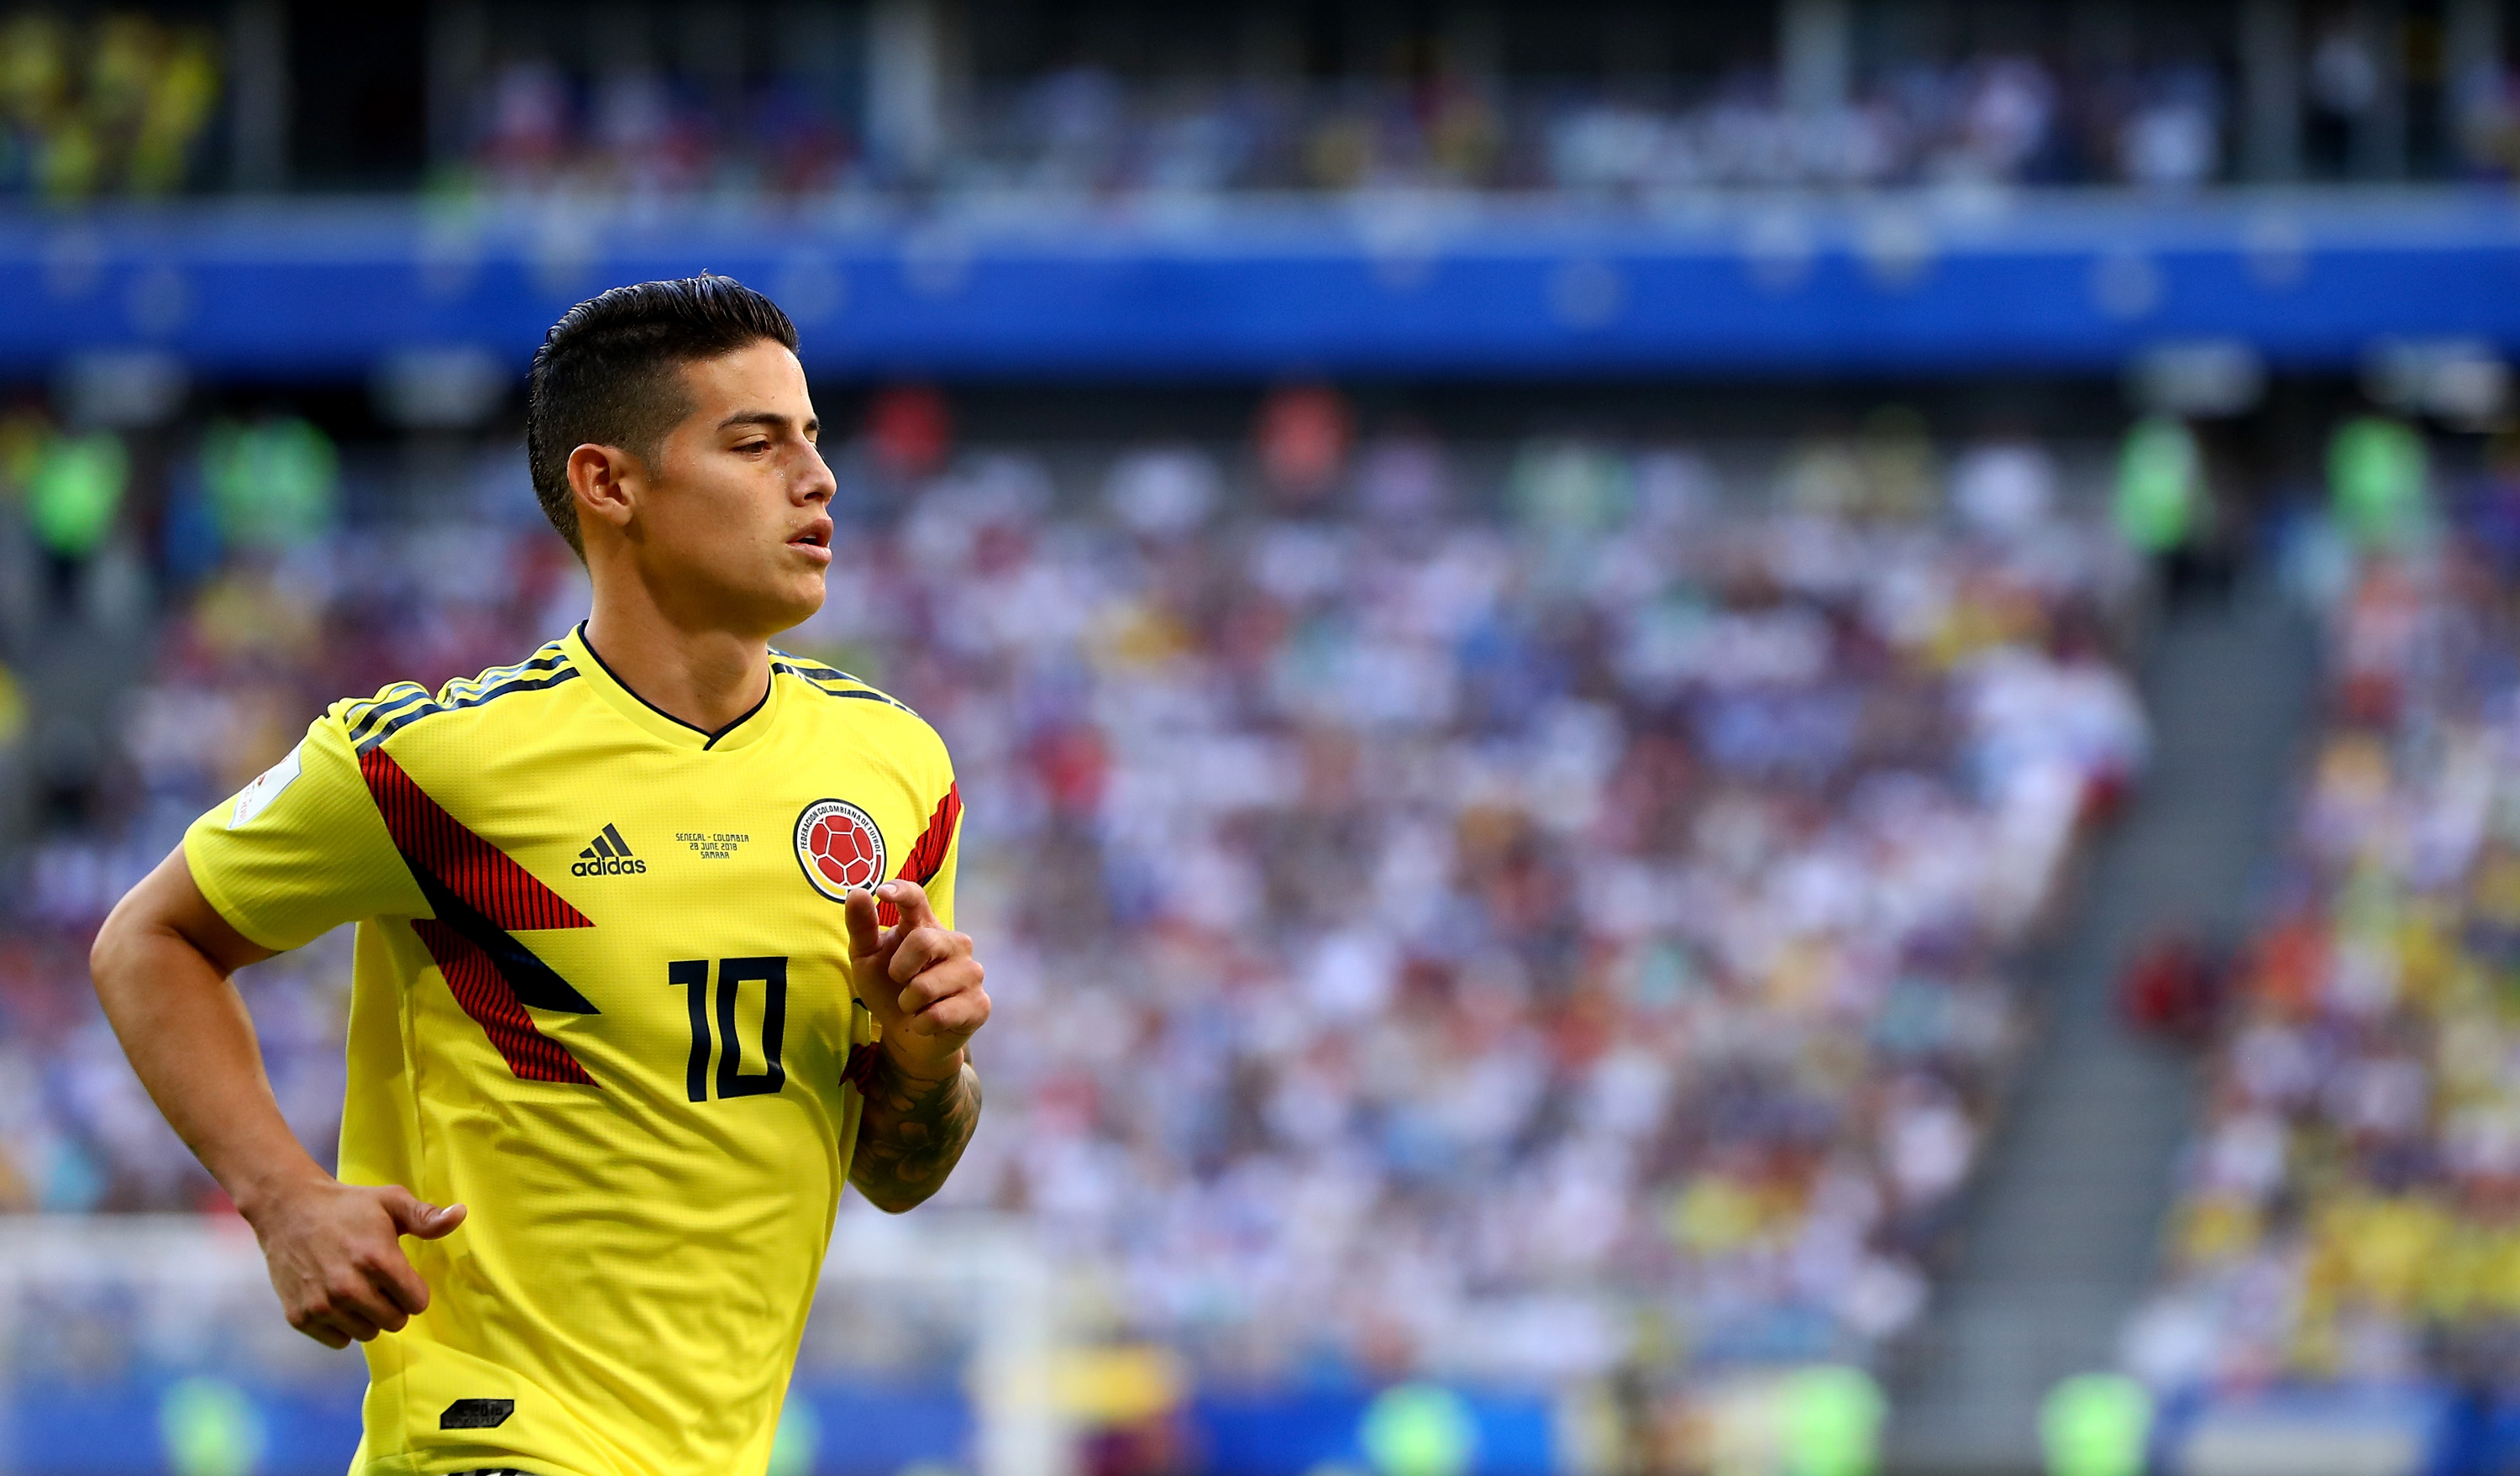 Colombian footballer James Rodriguez during FIFA World Cup 2018, before Colombia play England in the round of 16